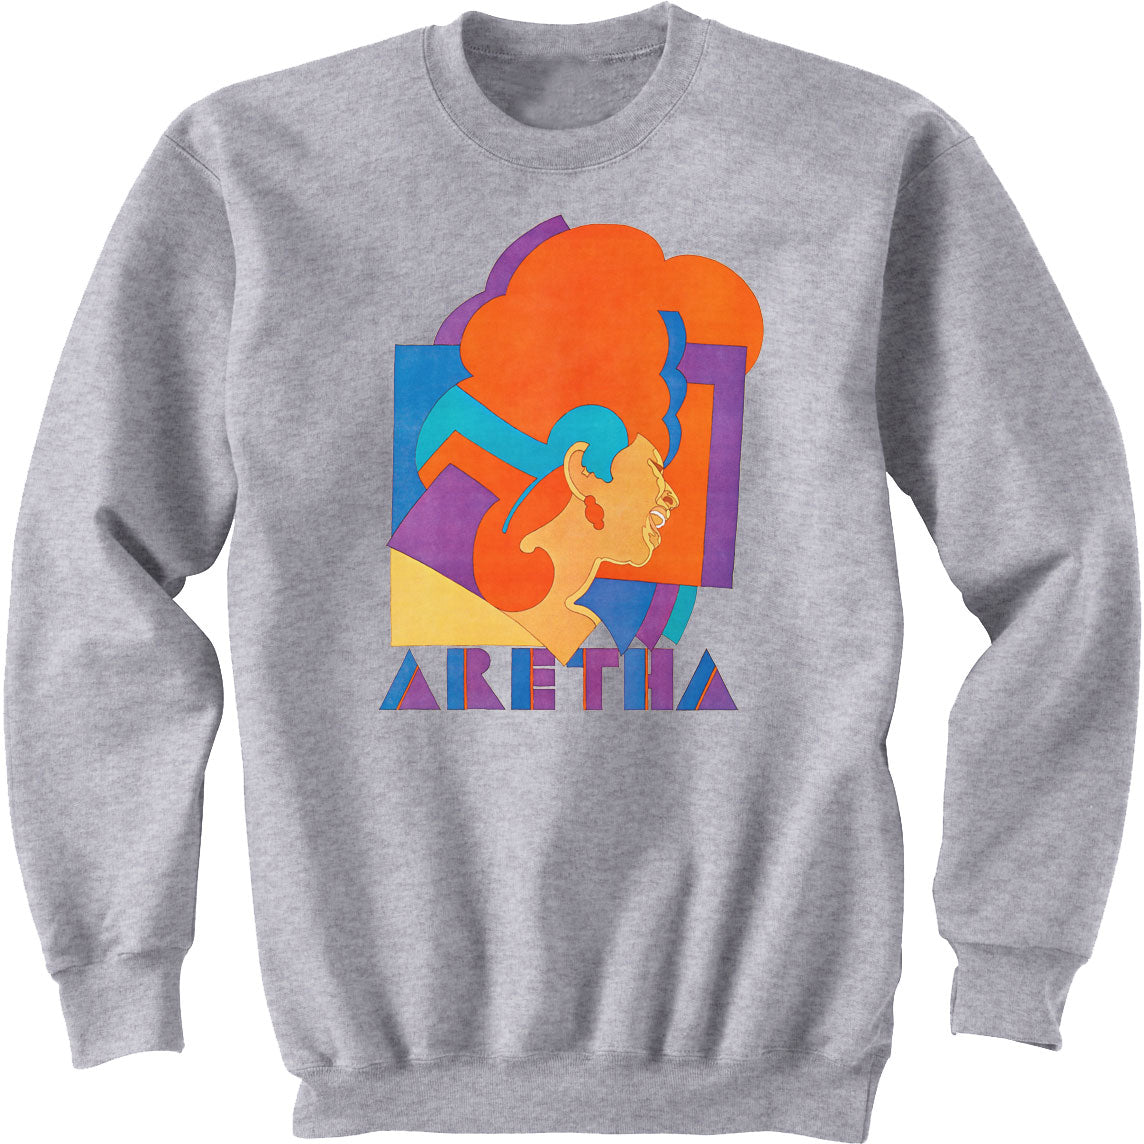 Aretha Franklin Sweat Shirt - Milton Glaser Poster Sweat Shirt